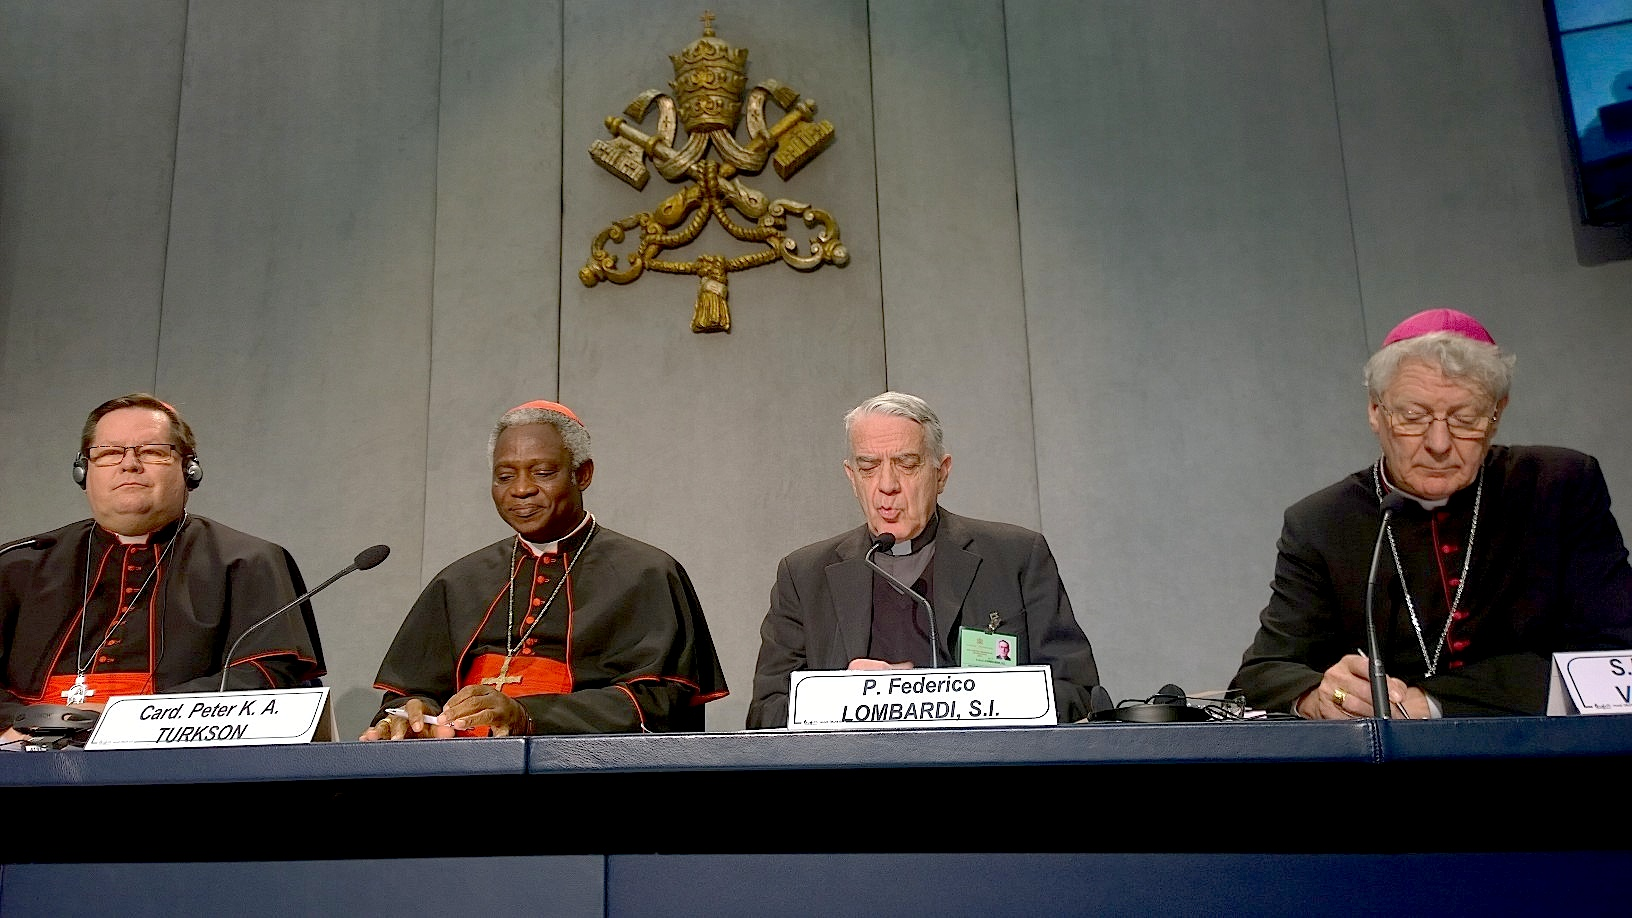 Briefing day 3 of the Synod - Mons. Piñeiro Garcia Calderón - Mons. Laurent Ulrich - Mons. Charles Chaput